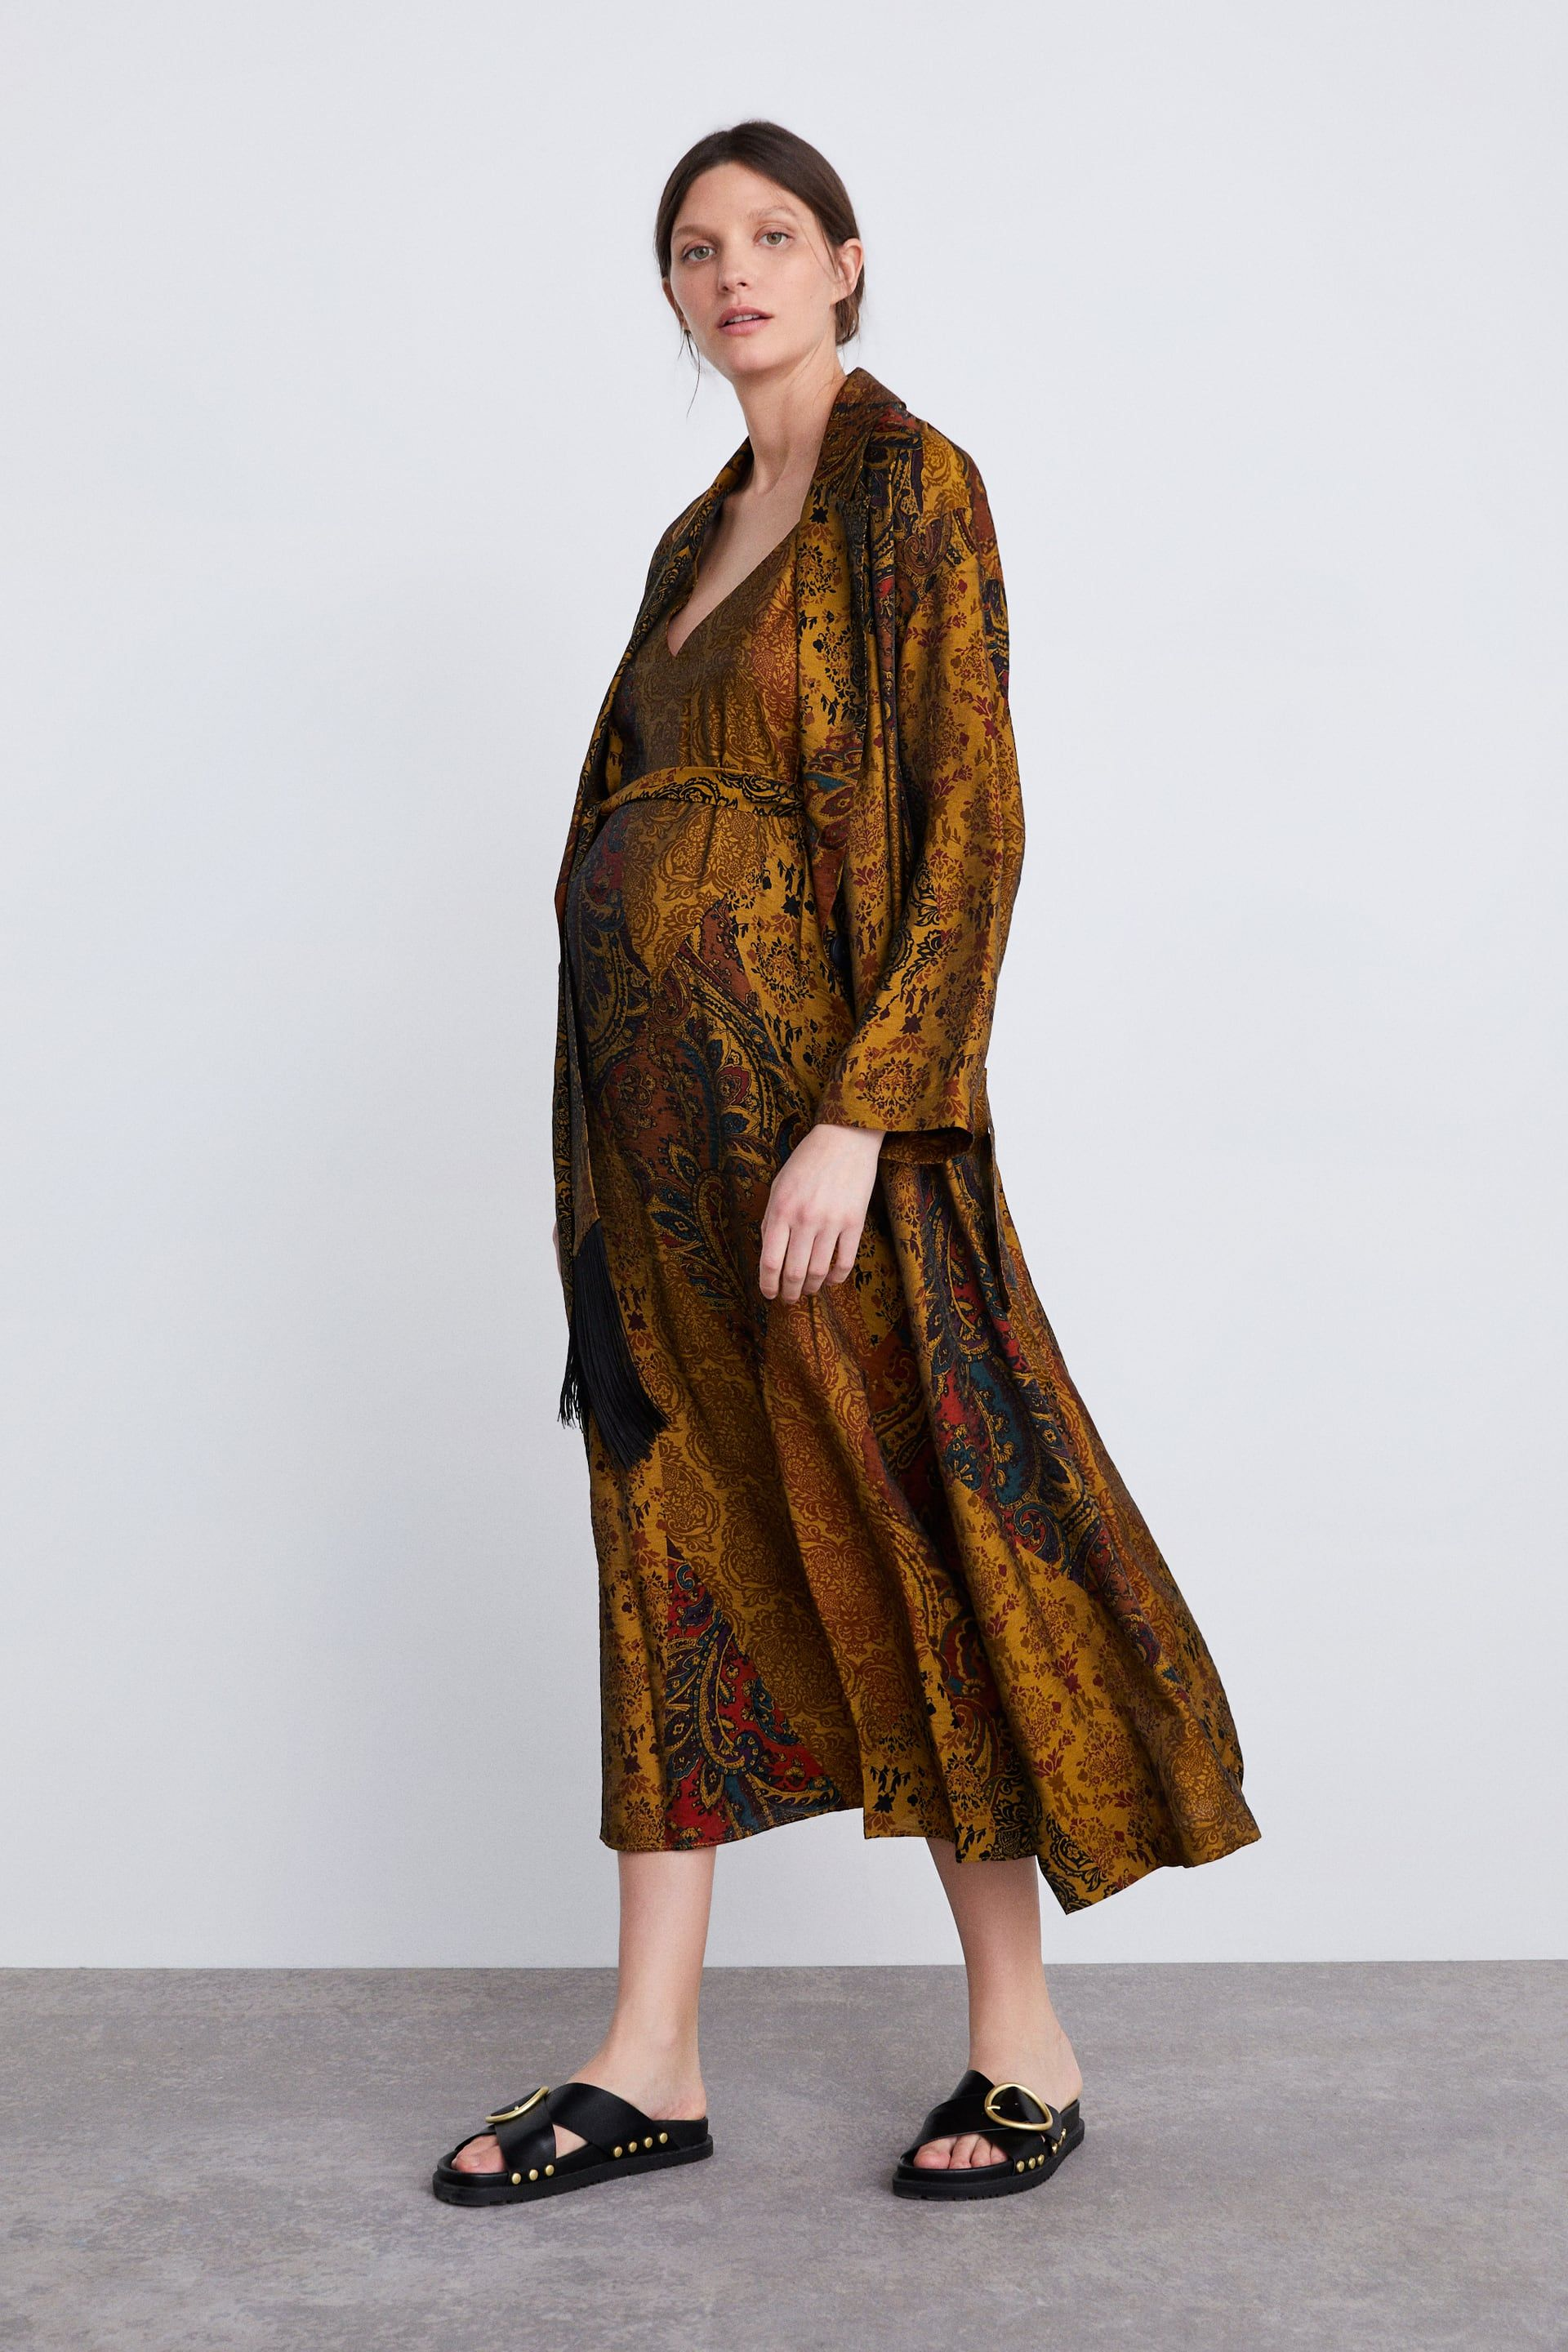 37a74567 LINGERIE STYLE PRINT DRESS - MOM-WOMAN-CORNER SHOPS | ZARA United States